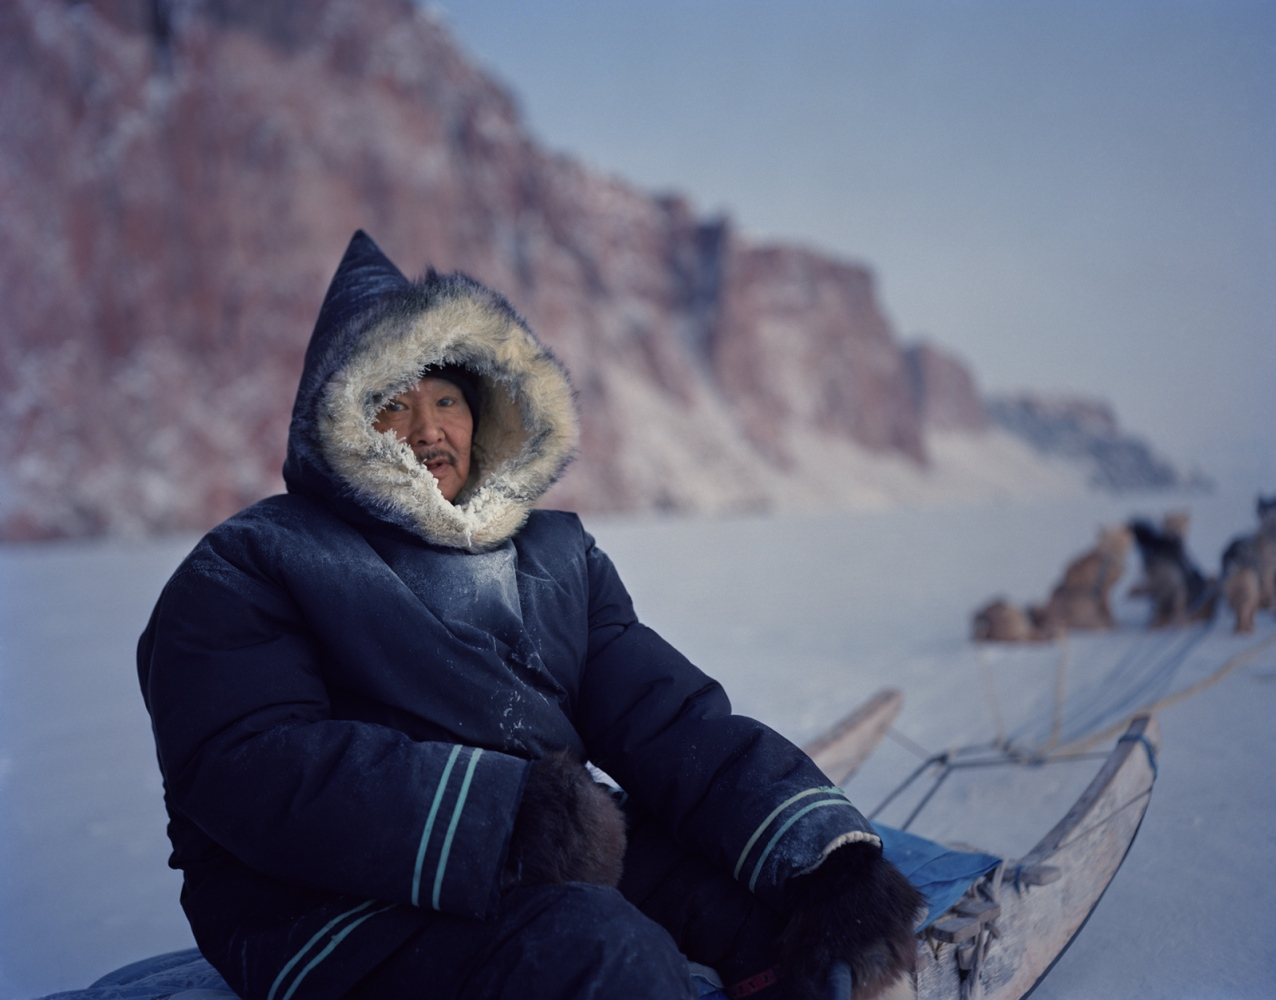 Photography image - Happy Aboriginal Day! Here's in memory of Peugatuk Ettuk, an Inuit elder and dear friend of mine who shared so much knowledge of the Arctic landscape. Arctic Bay, Nunavut, Canada, 2014.